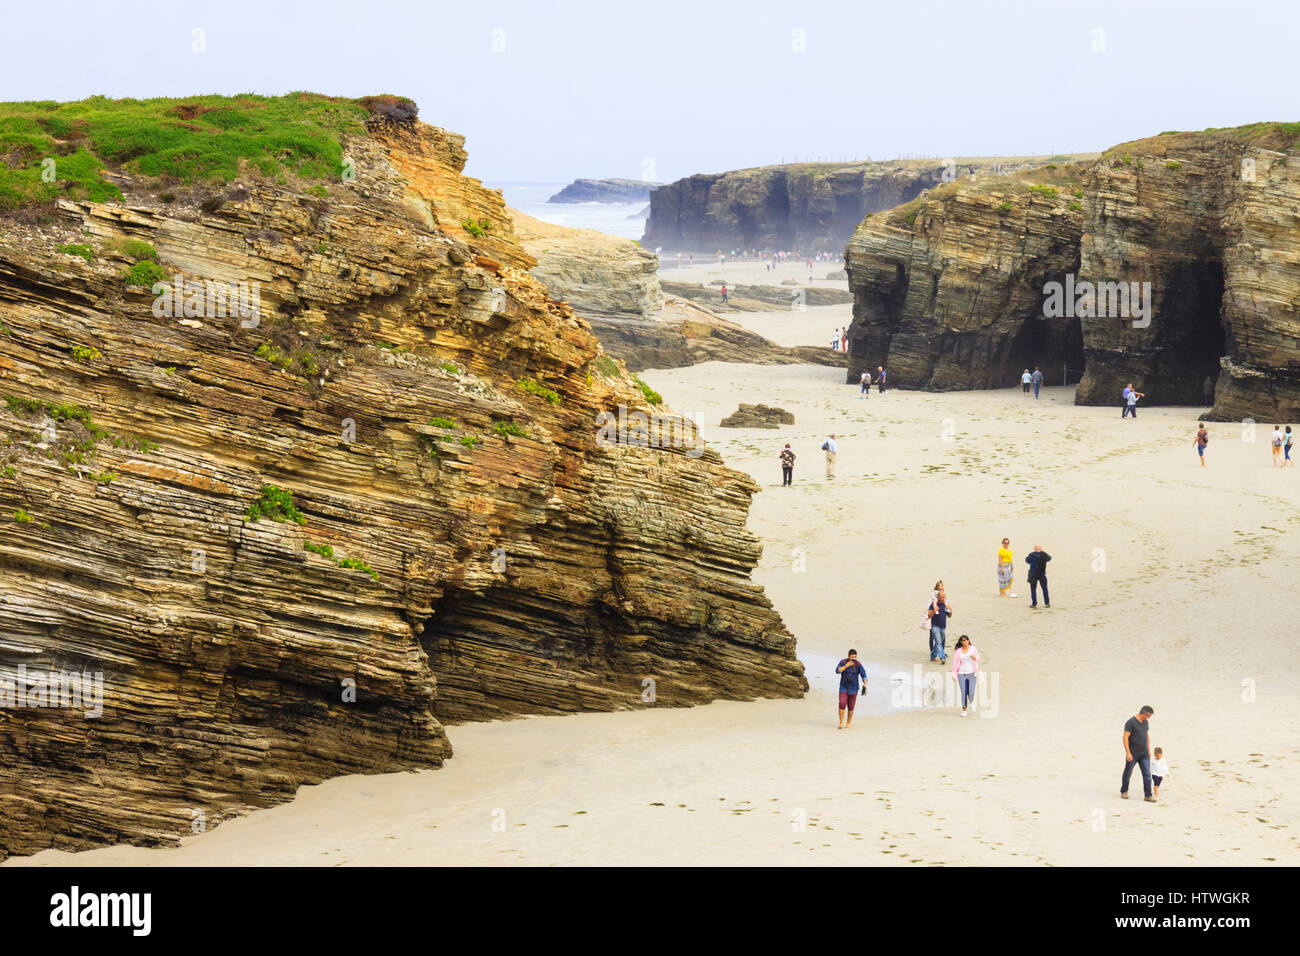 Beach of the Cathedrals Natural Monument at Ribadeo municipality, Lugo province, Galicia, Spain, Europe - Stock Image